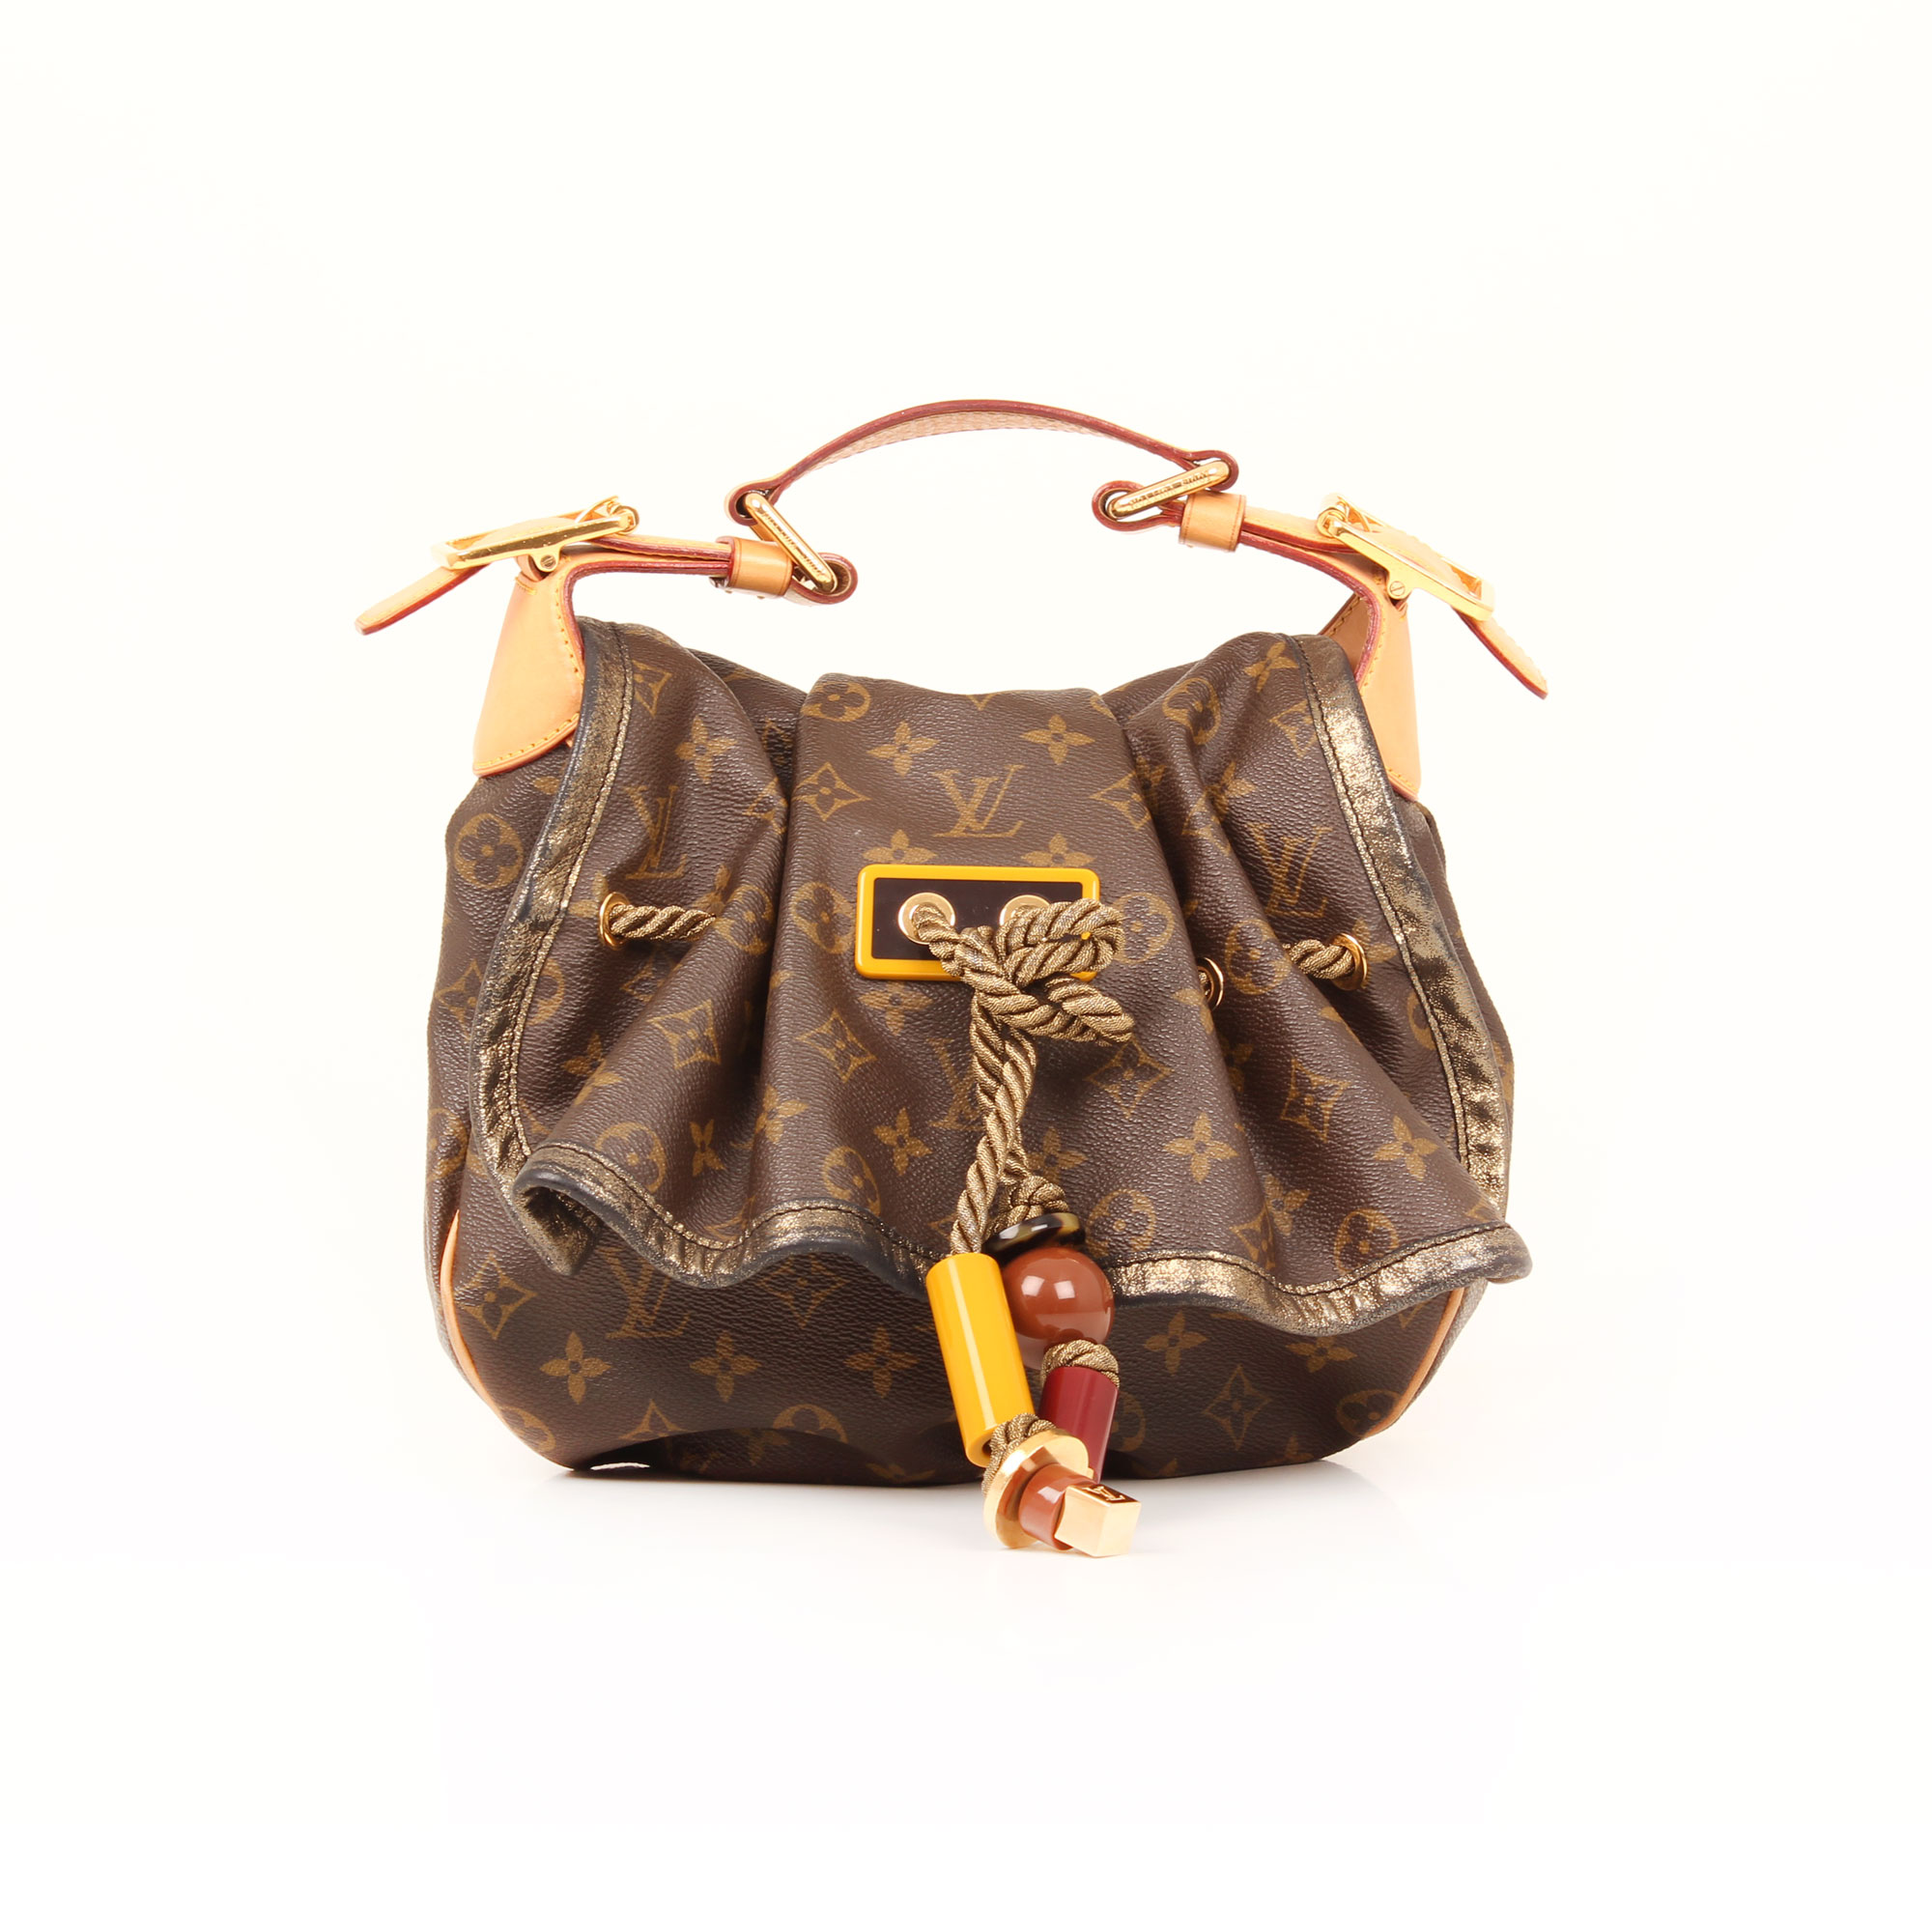 Front image of bolso louis vuitton kalahari pm